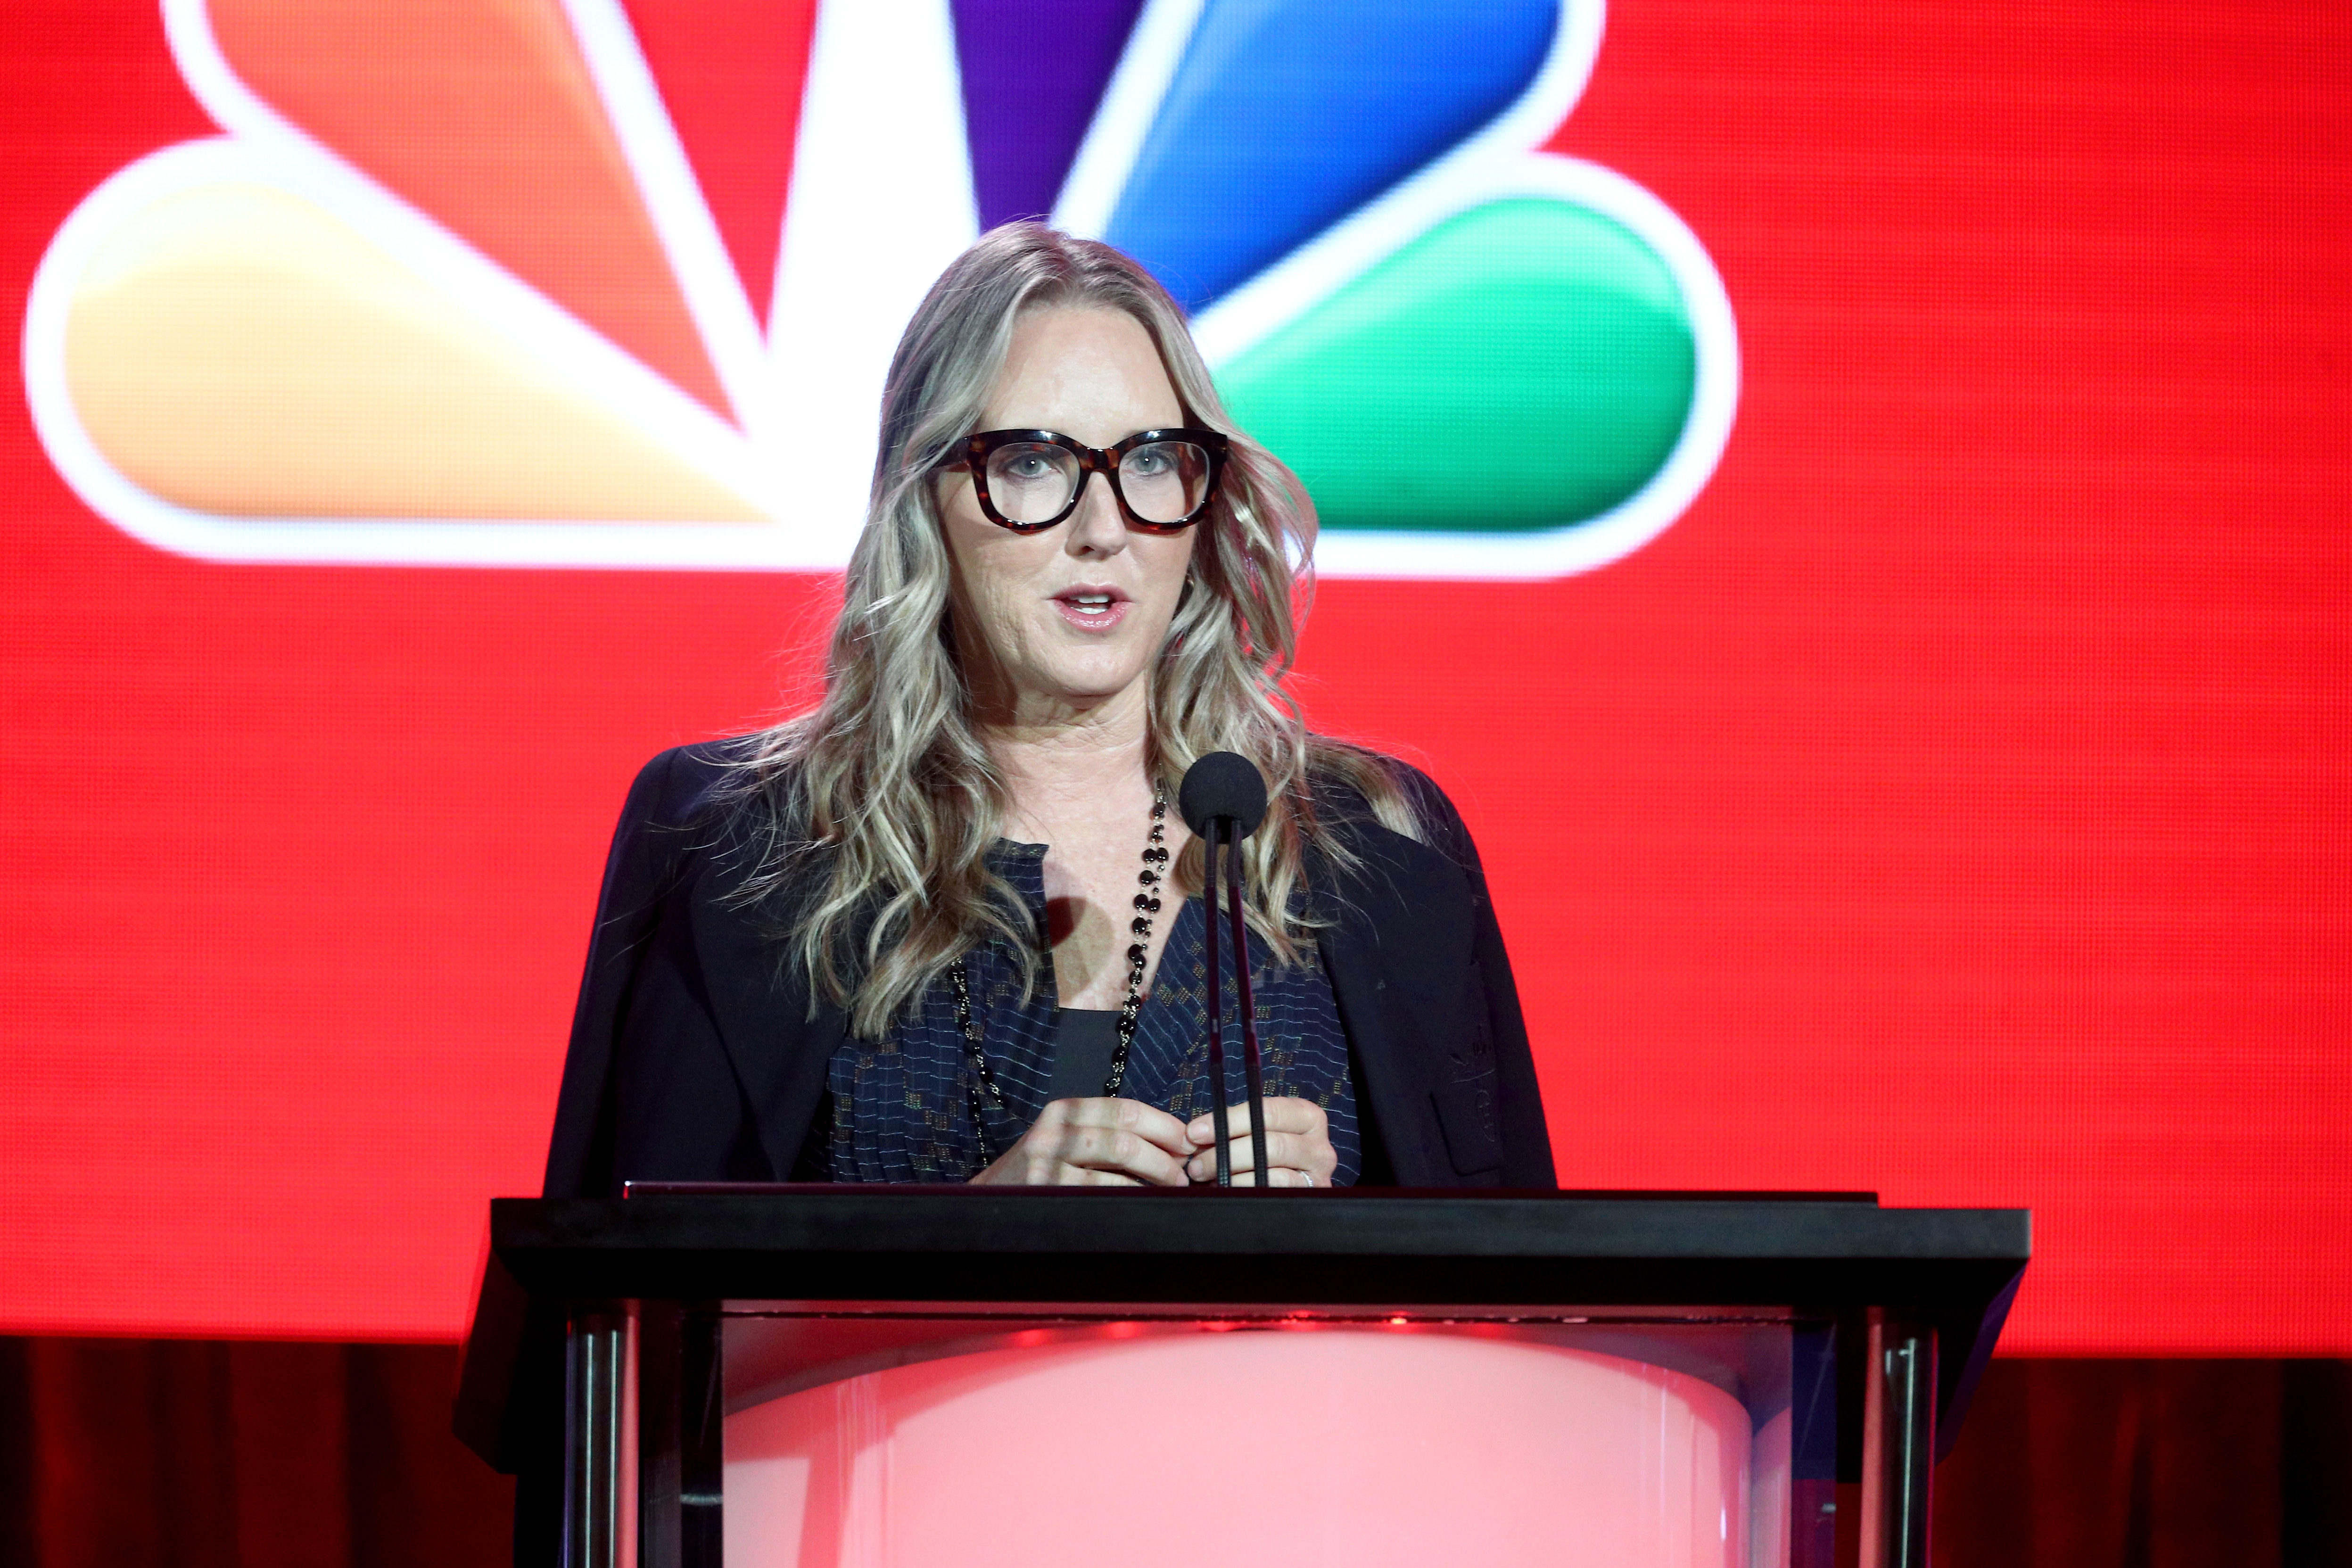 President of NBC Entertainment Jennifer Salke speaks onstage during the NBCUniversal portion of the 2018 Winter Television Critics Association Press Tour at The Langham Huntington, Pasadena on January 9, 2018 in Pasadena, California.